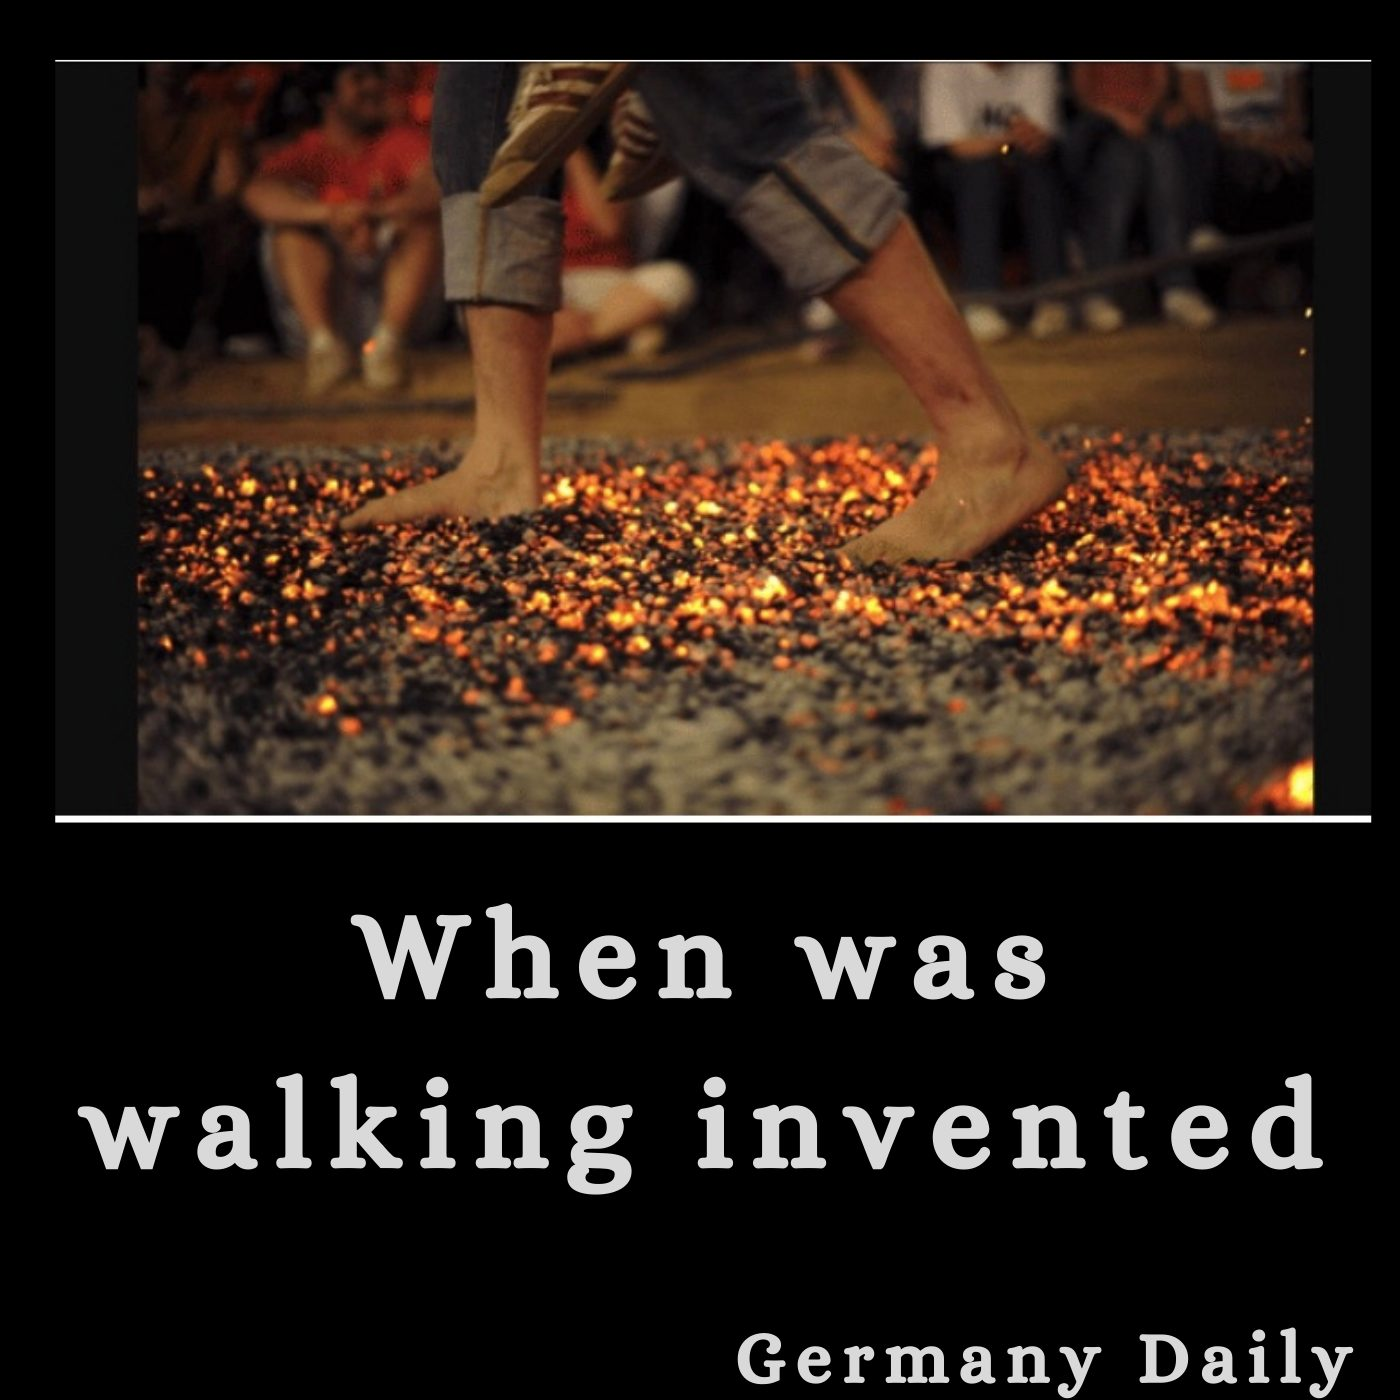 when was walking invented